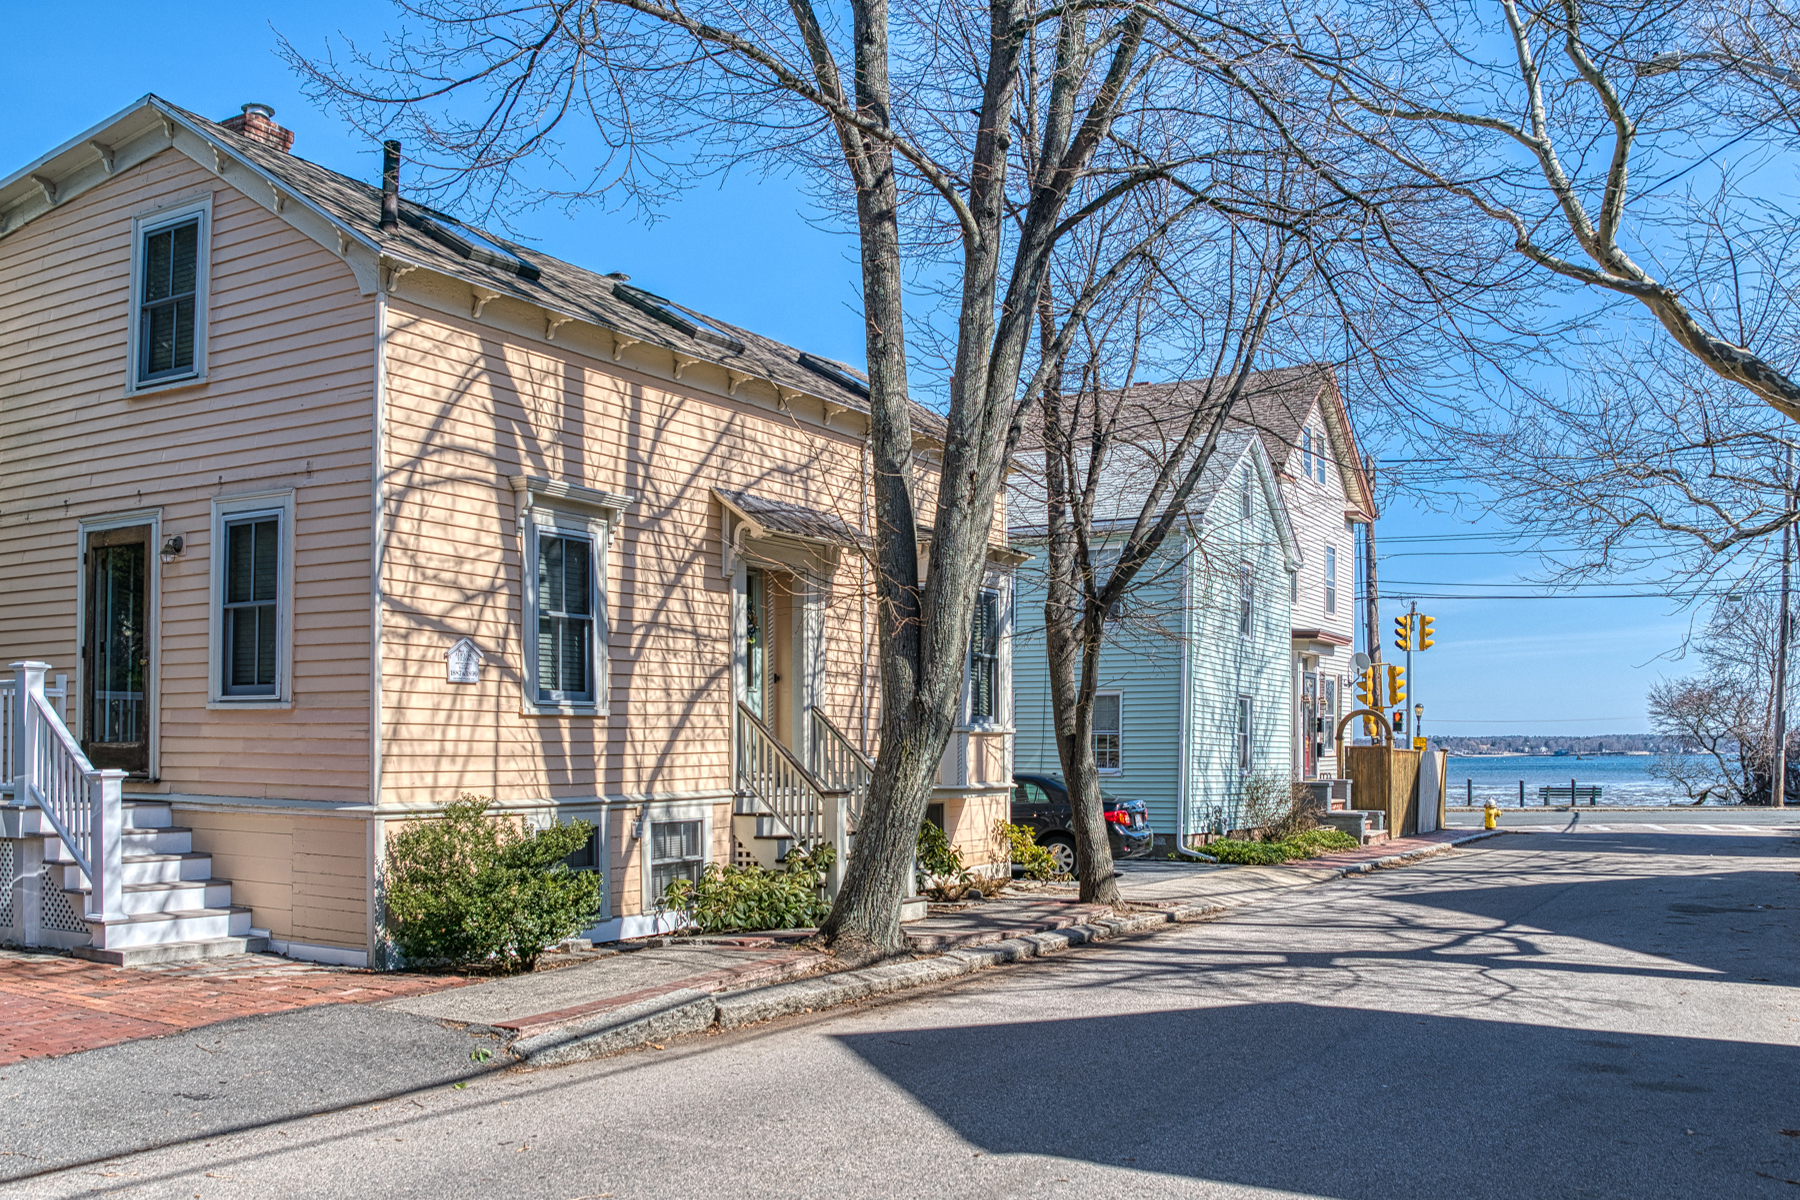 Single Family Homes for Active at Charming antique located in a most coveted area of Salem 23 Pickman Street Salem, Massachusetts 01970 United States